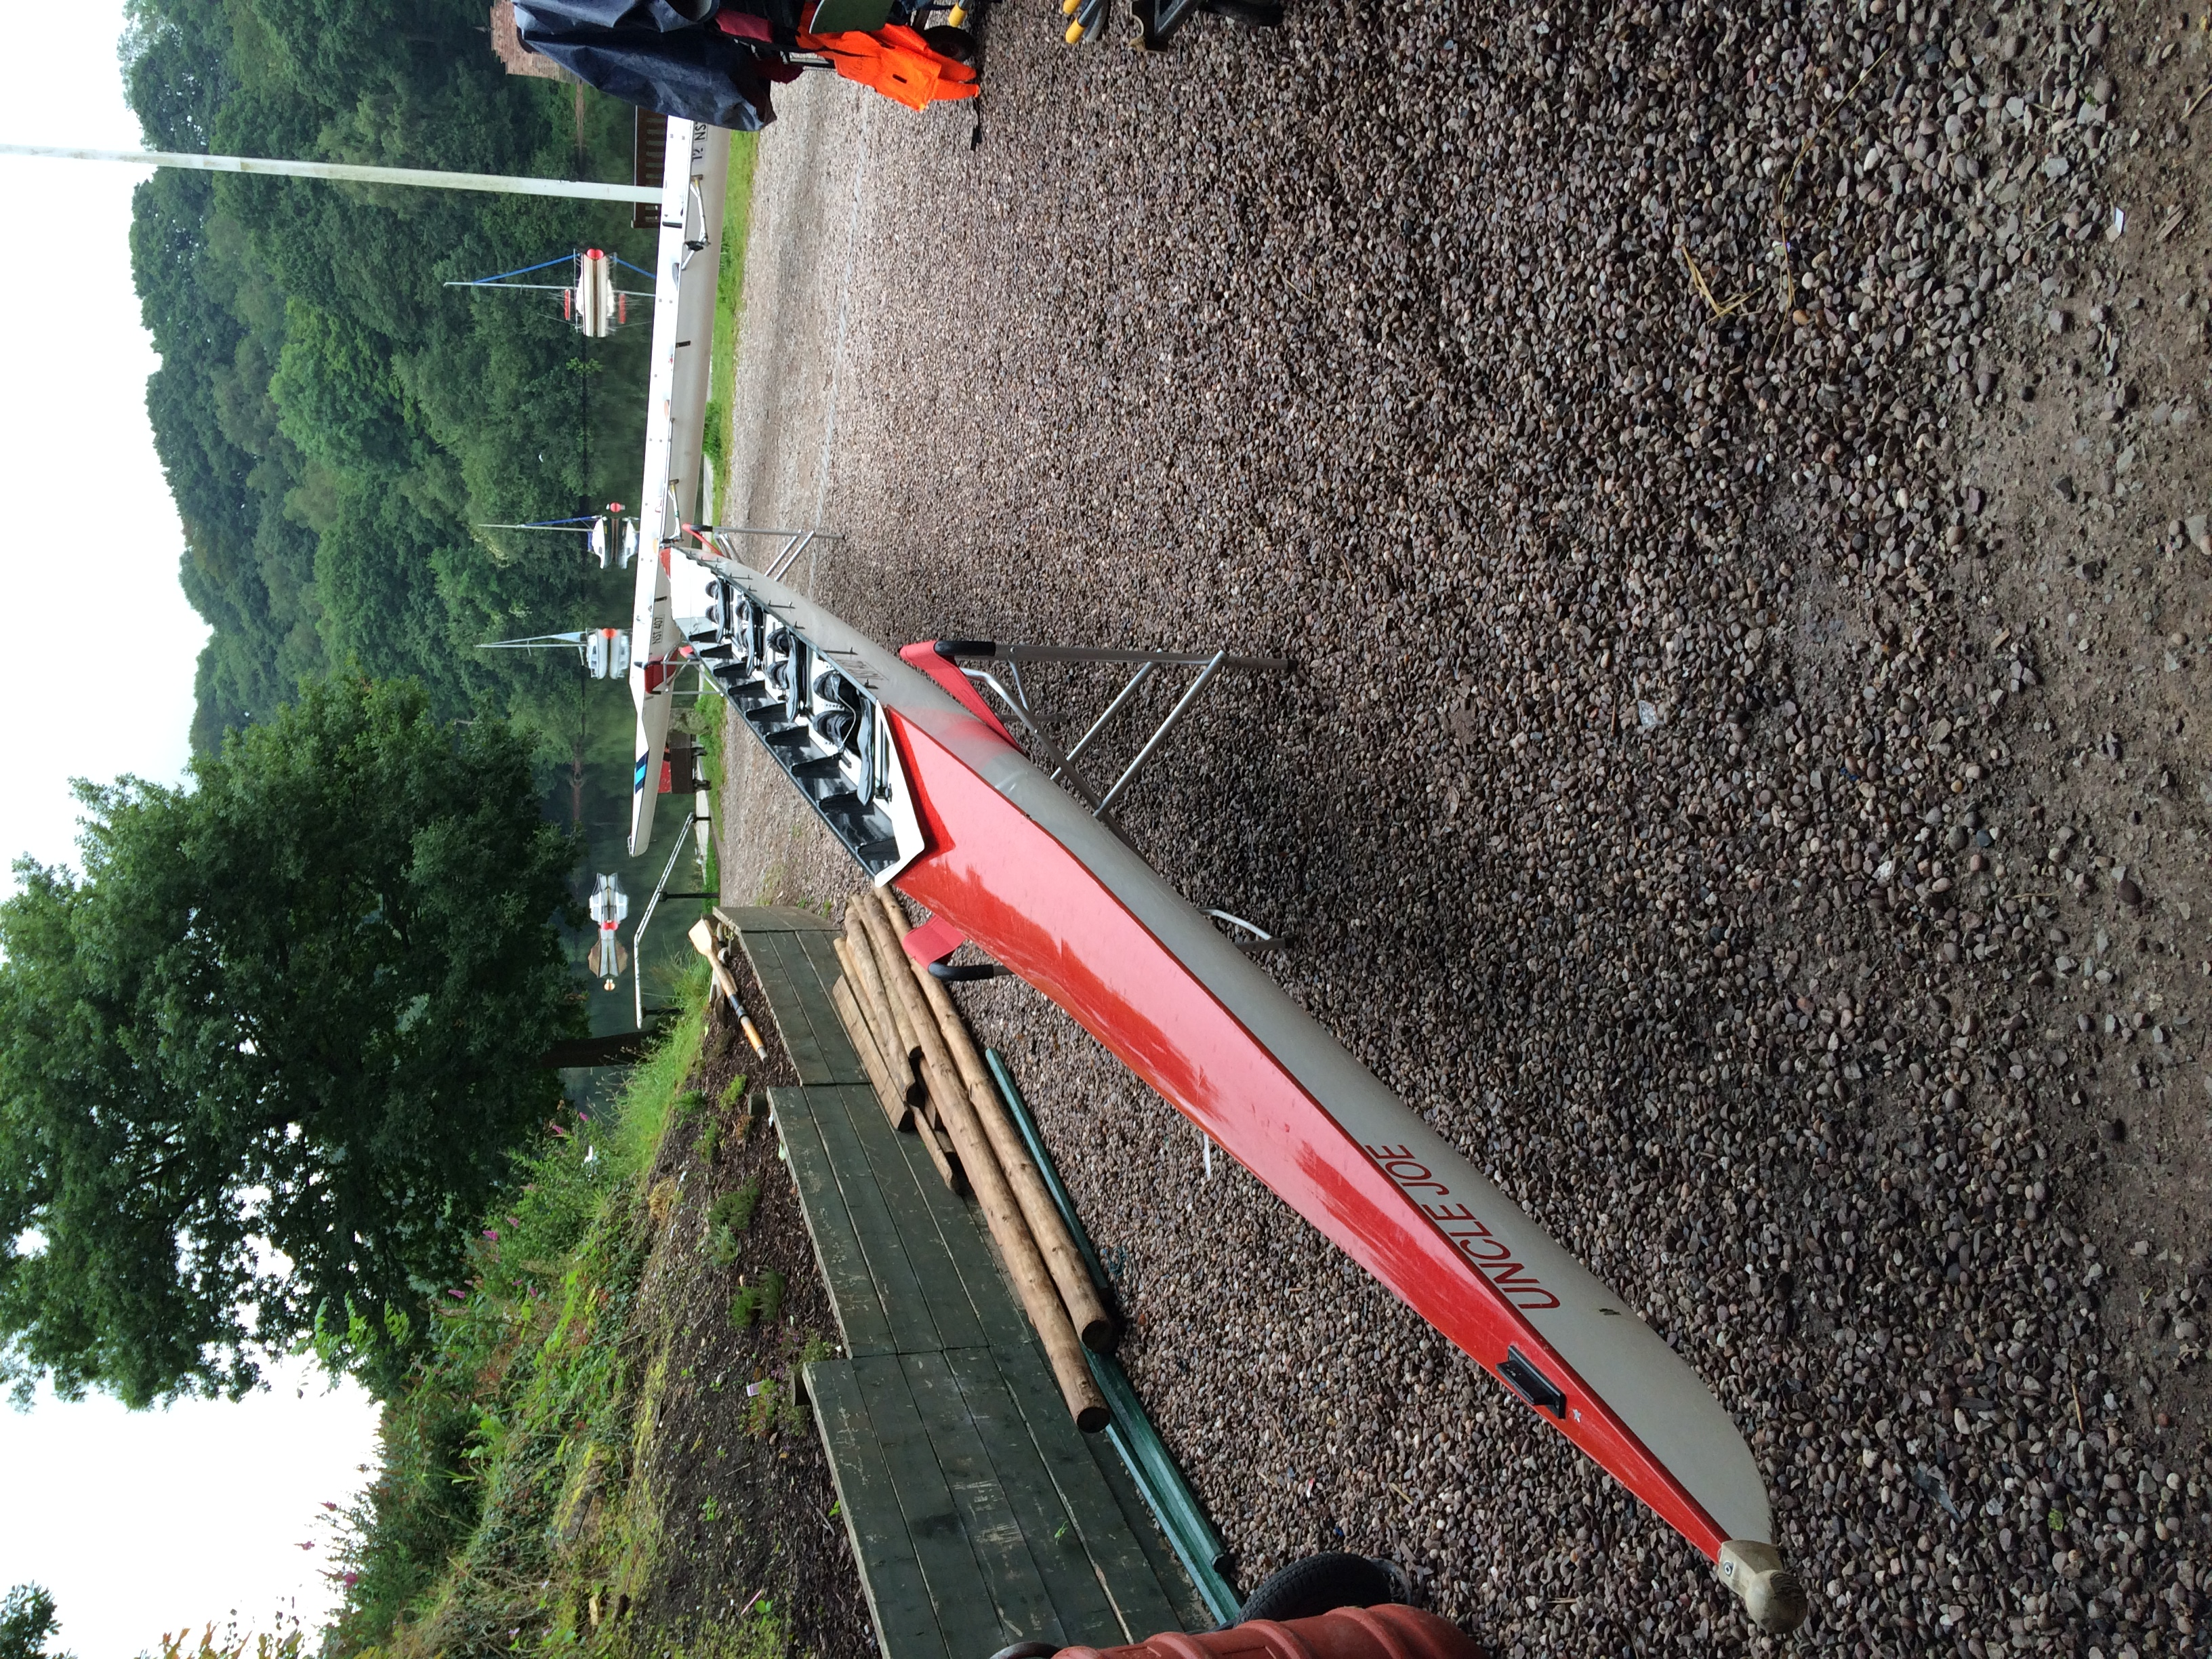 Stern Coxed 4